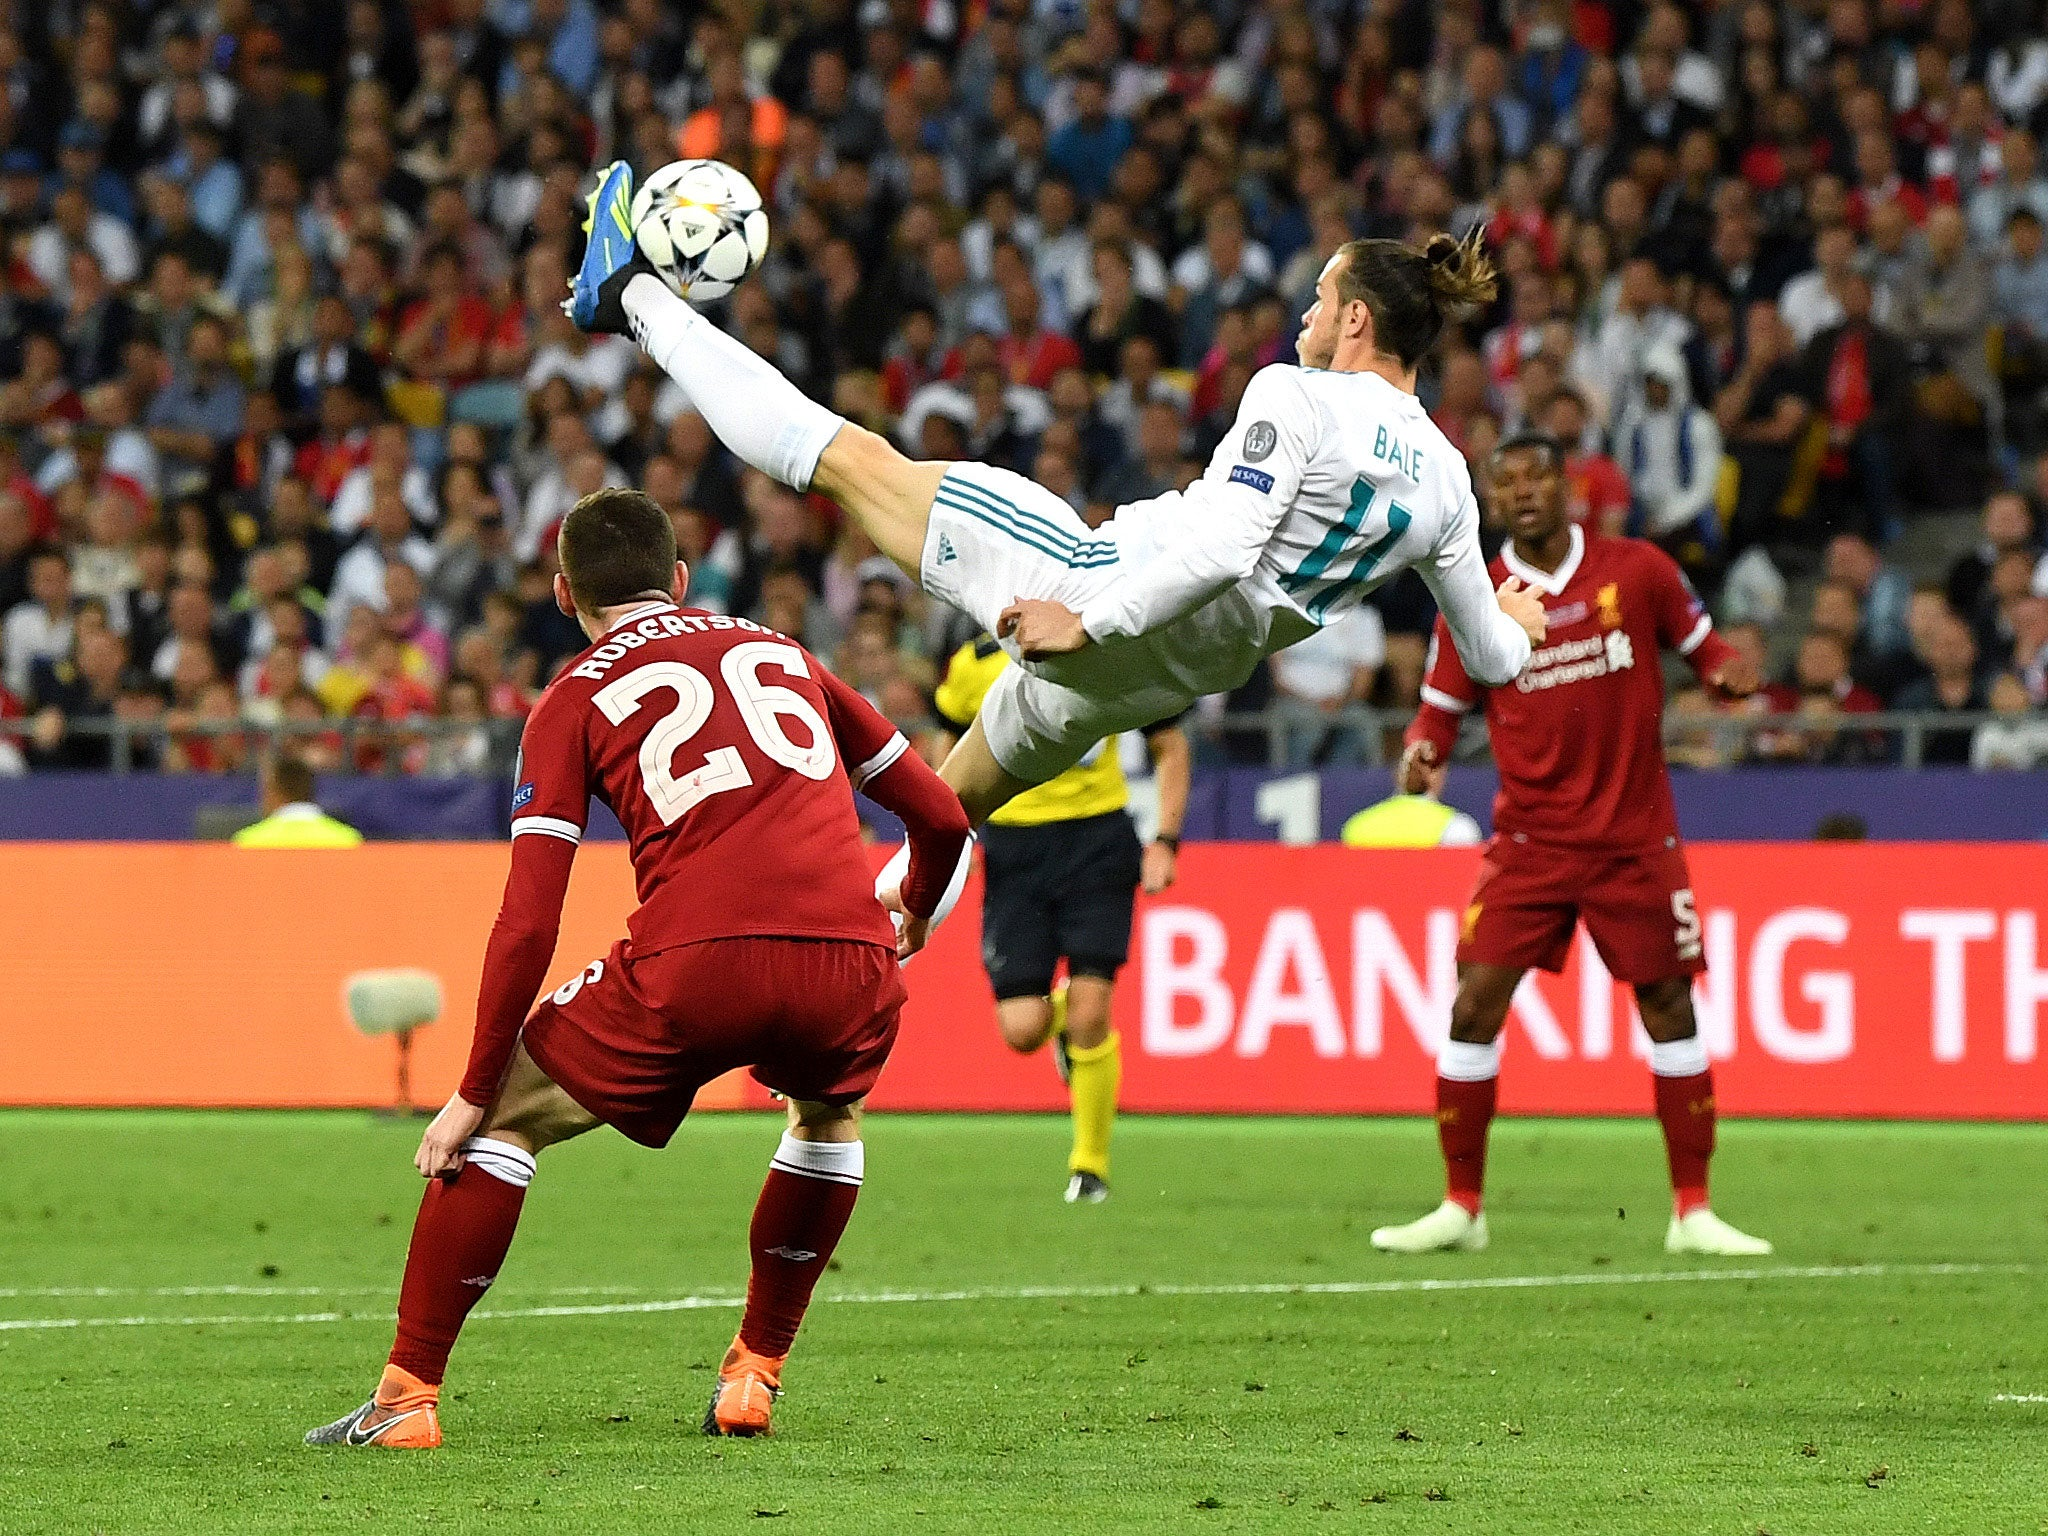 Cristiano Ronaldo, Lucy Bronze and Elliot Embleton up for Uefa award but Gareth Bale Champions League goal snubbed